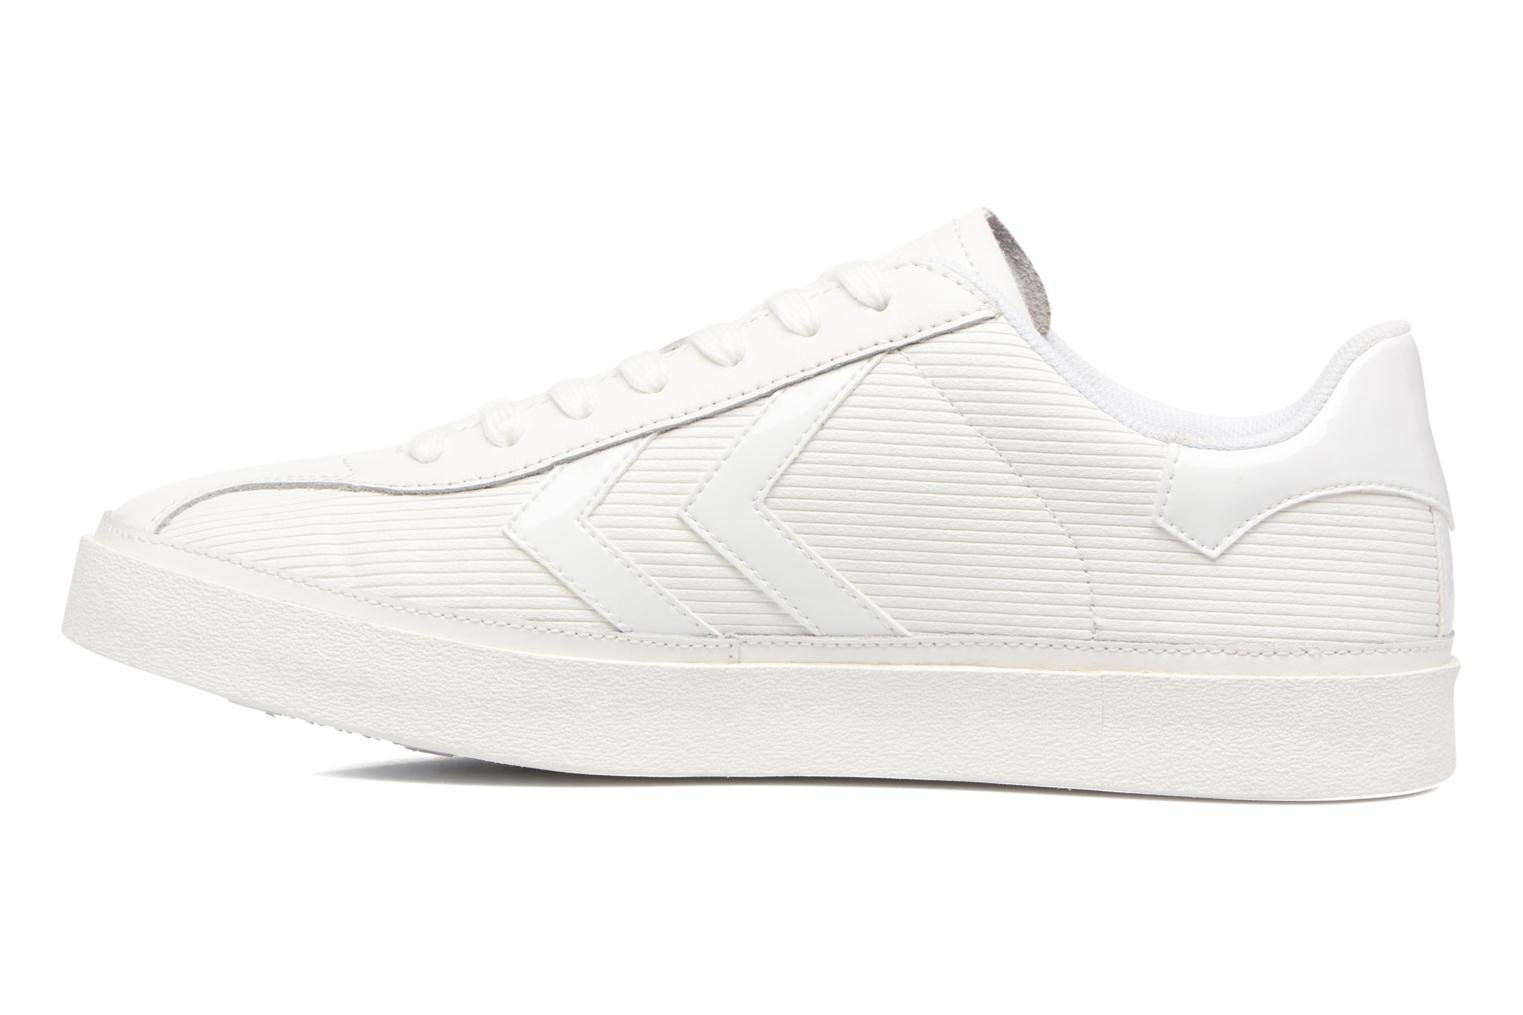 Trainers Hummel Diamant White Stripes White front view